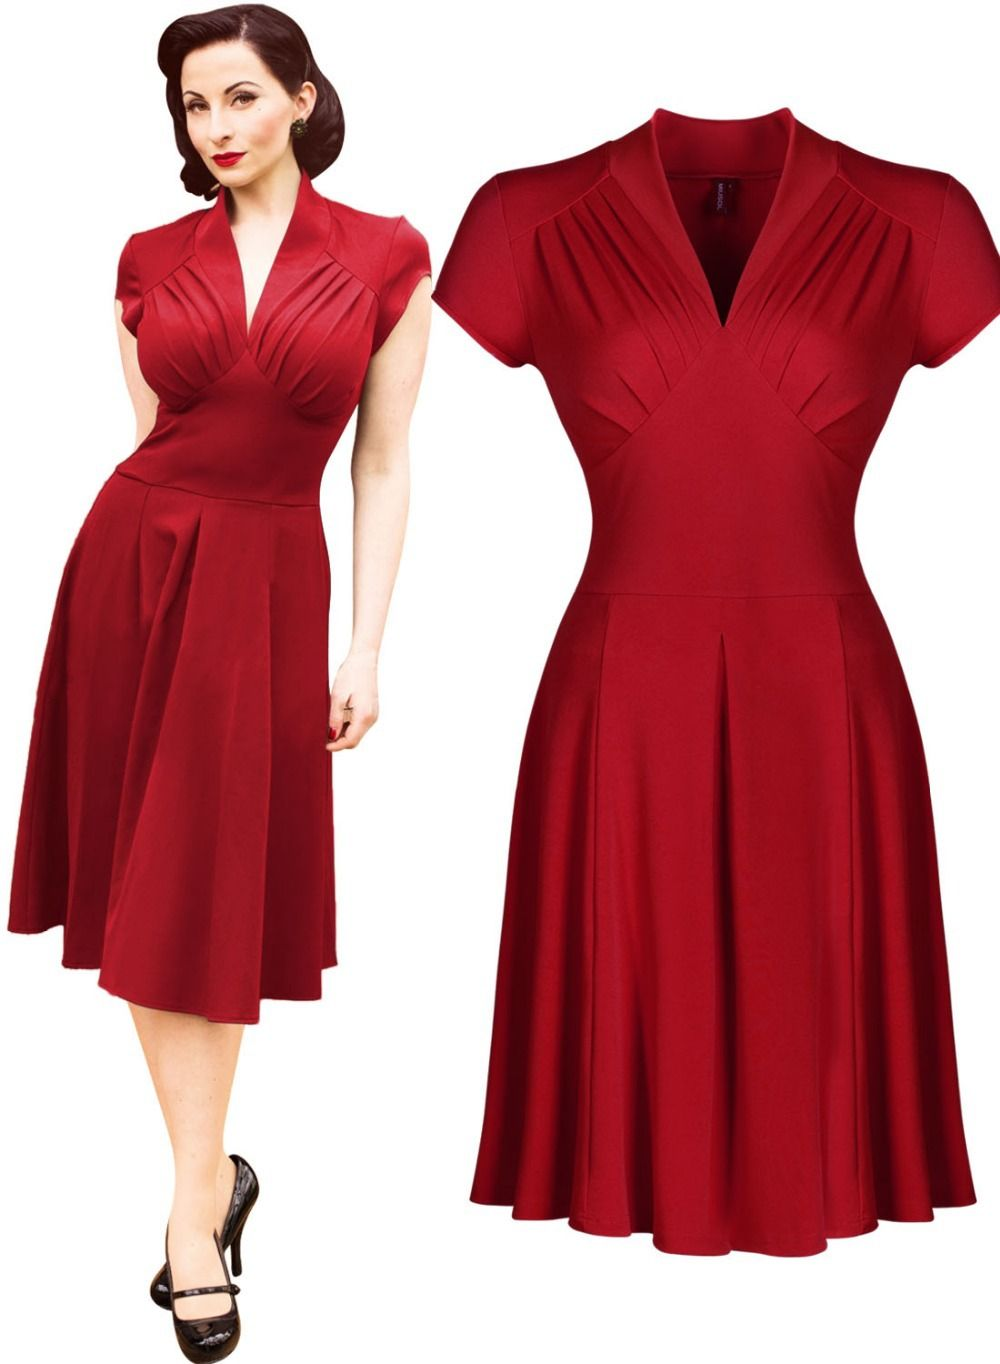 95086e815a Women s Vintage Style Retro 1940s Shirtwaist Flared Evening Tea Dress Swing  Skaters Ball Gown